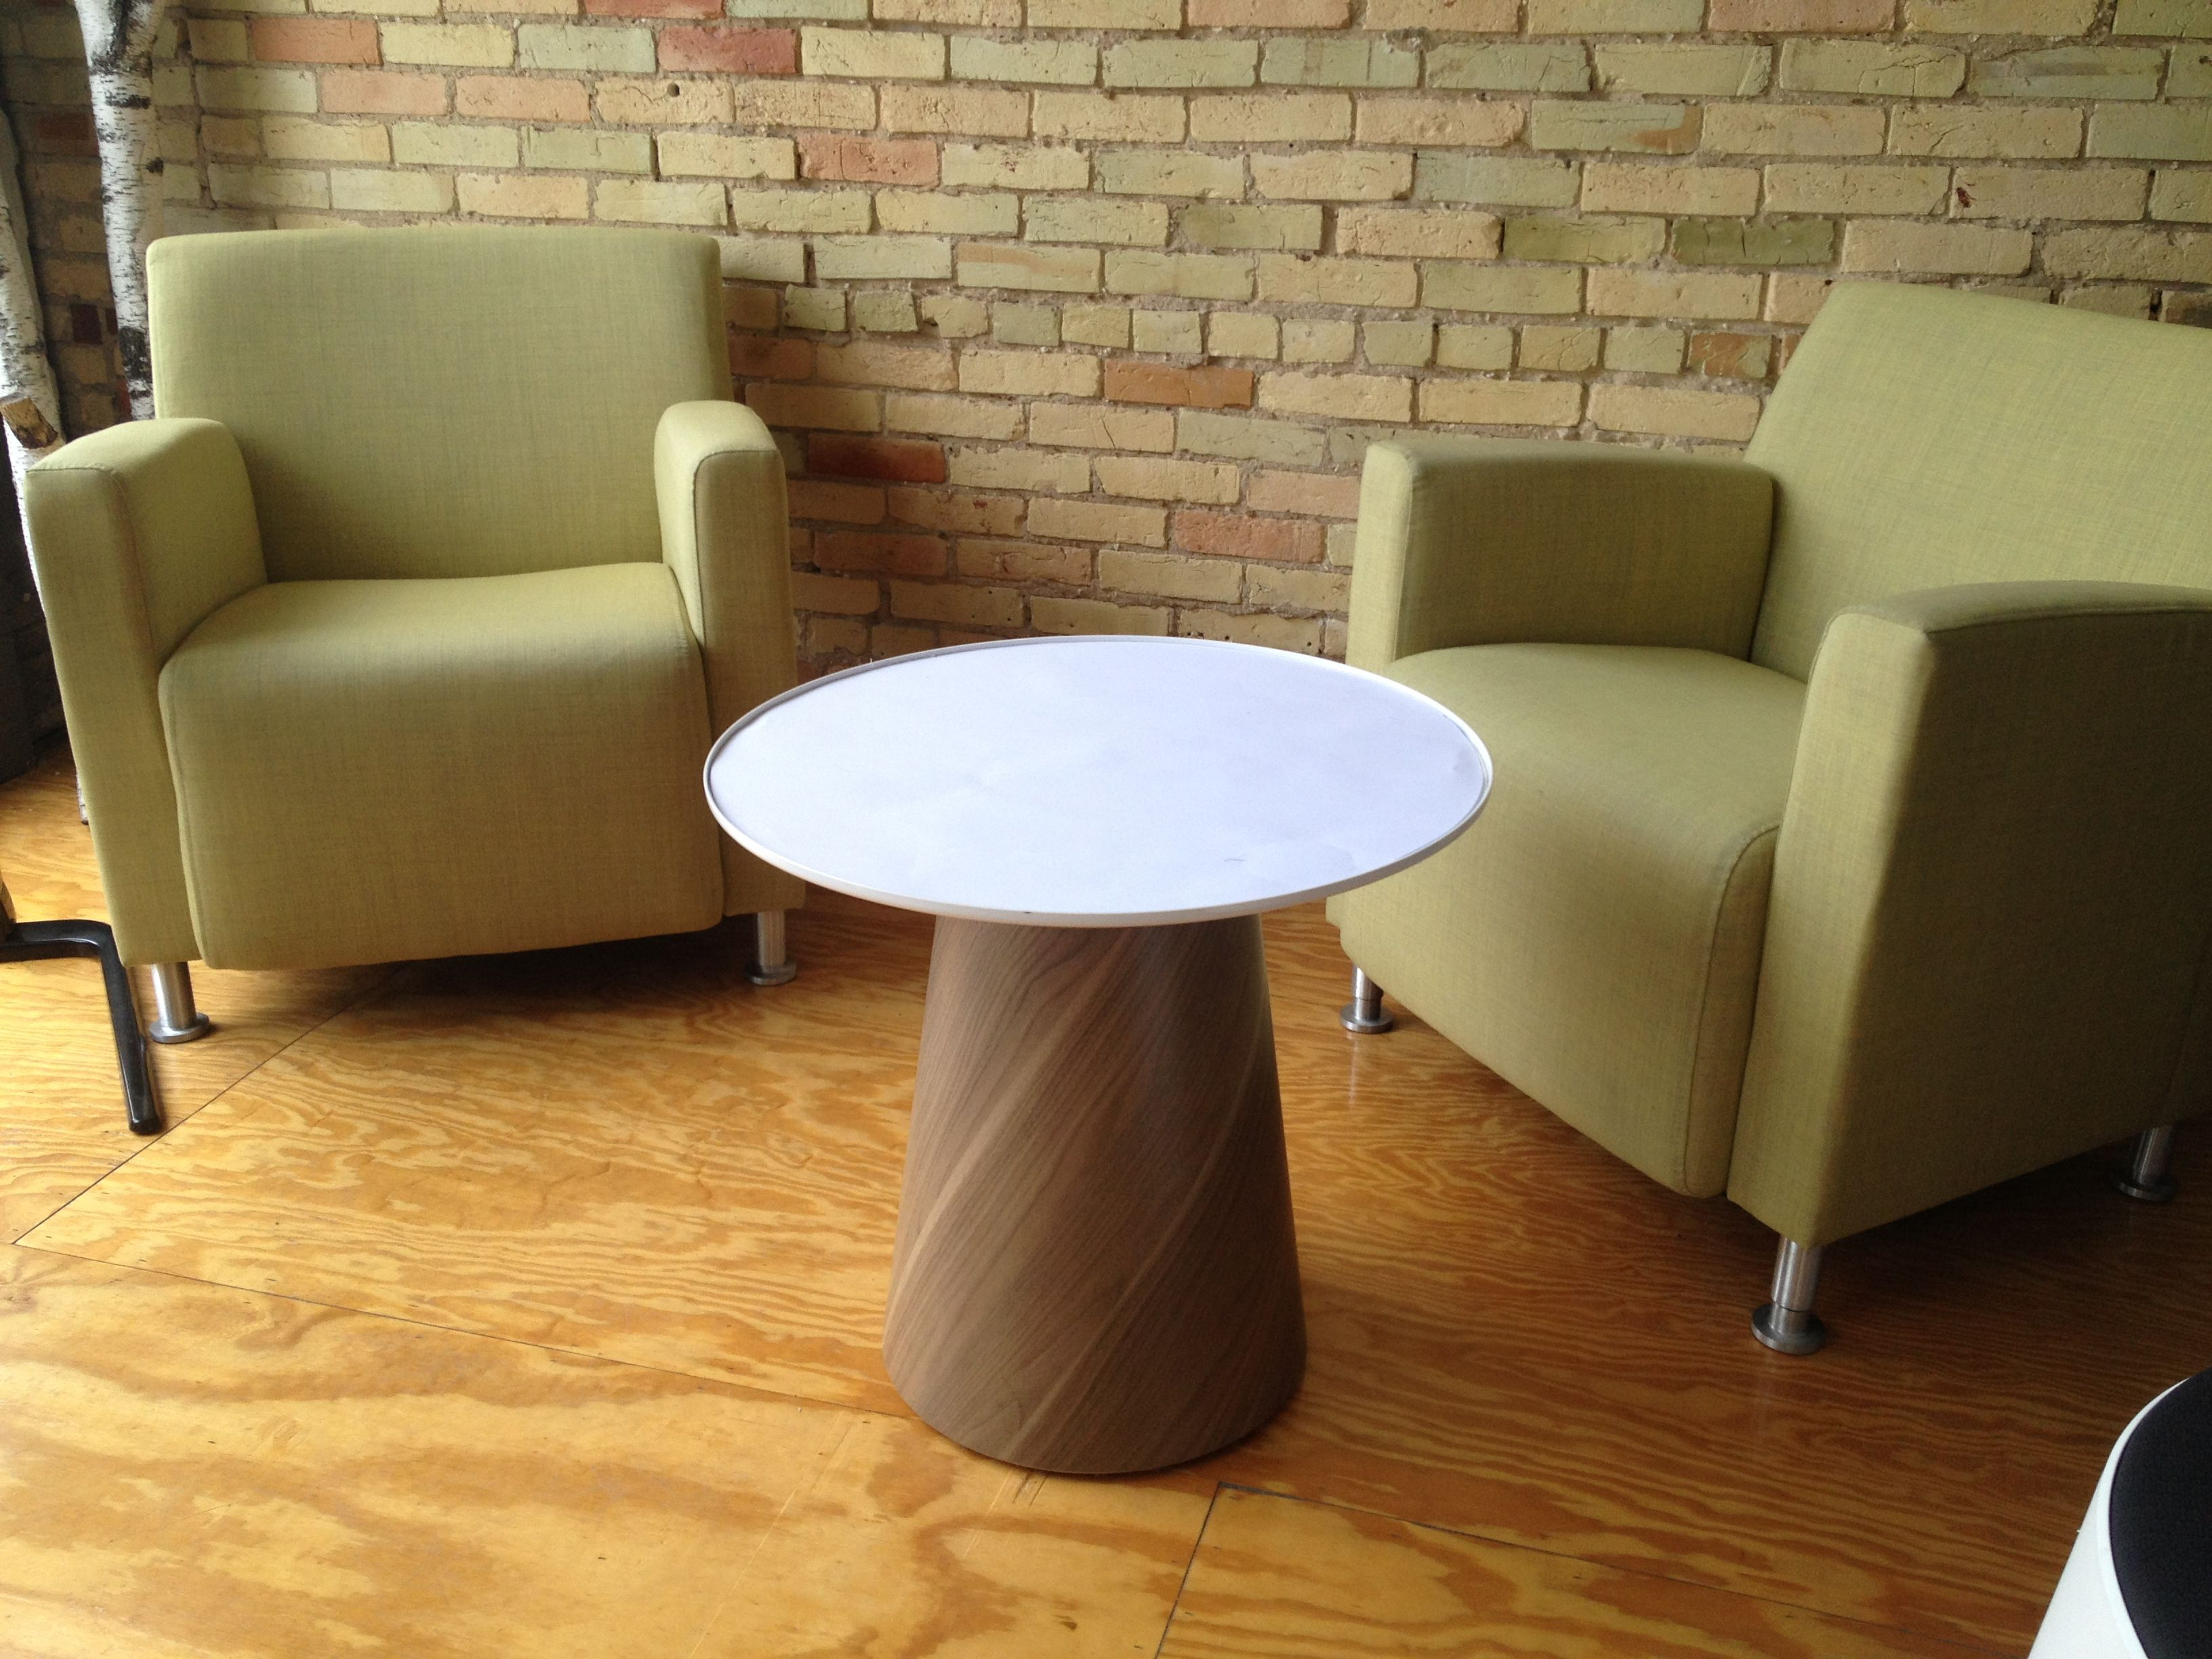 Paper Table Steelcase Turnstone office ideas